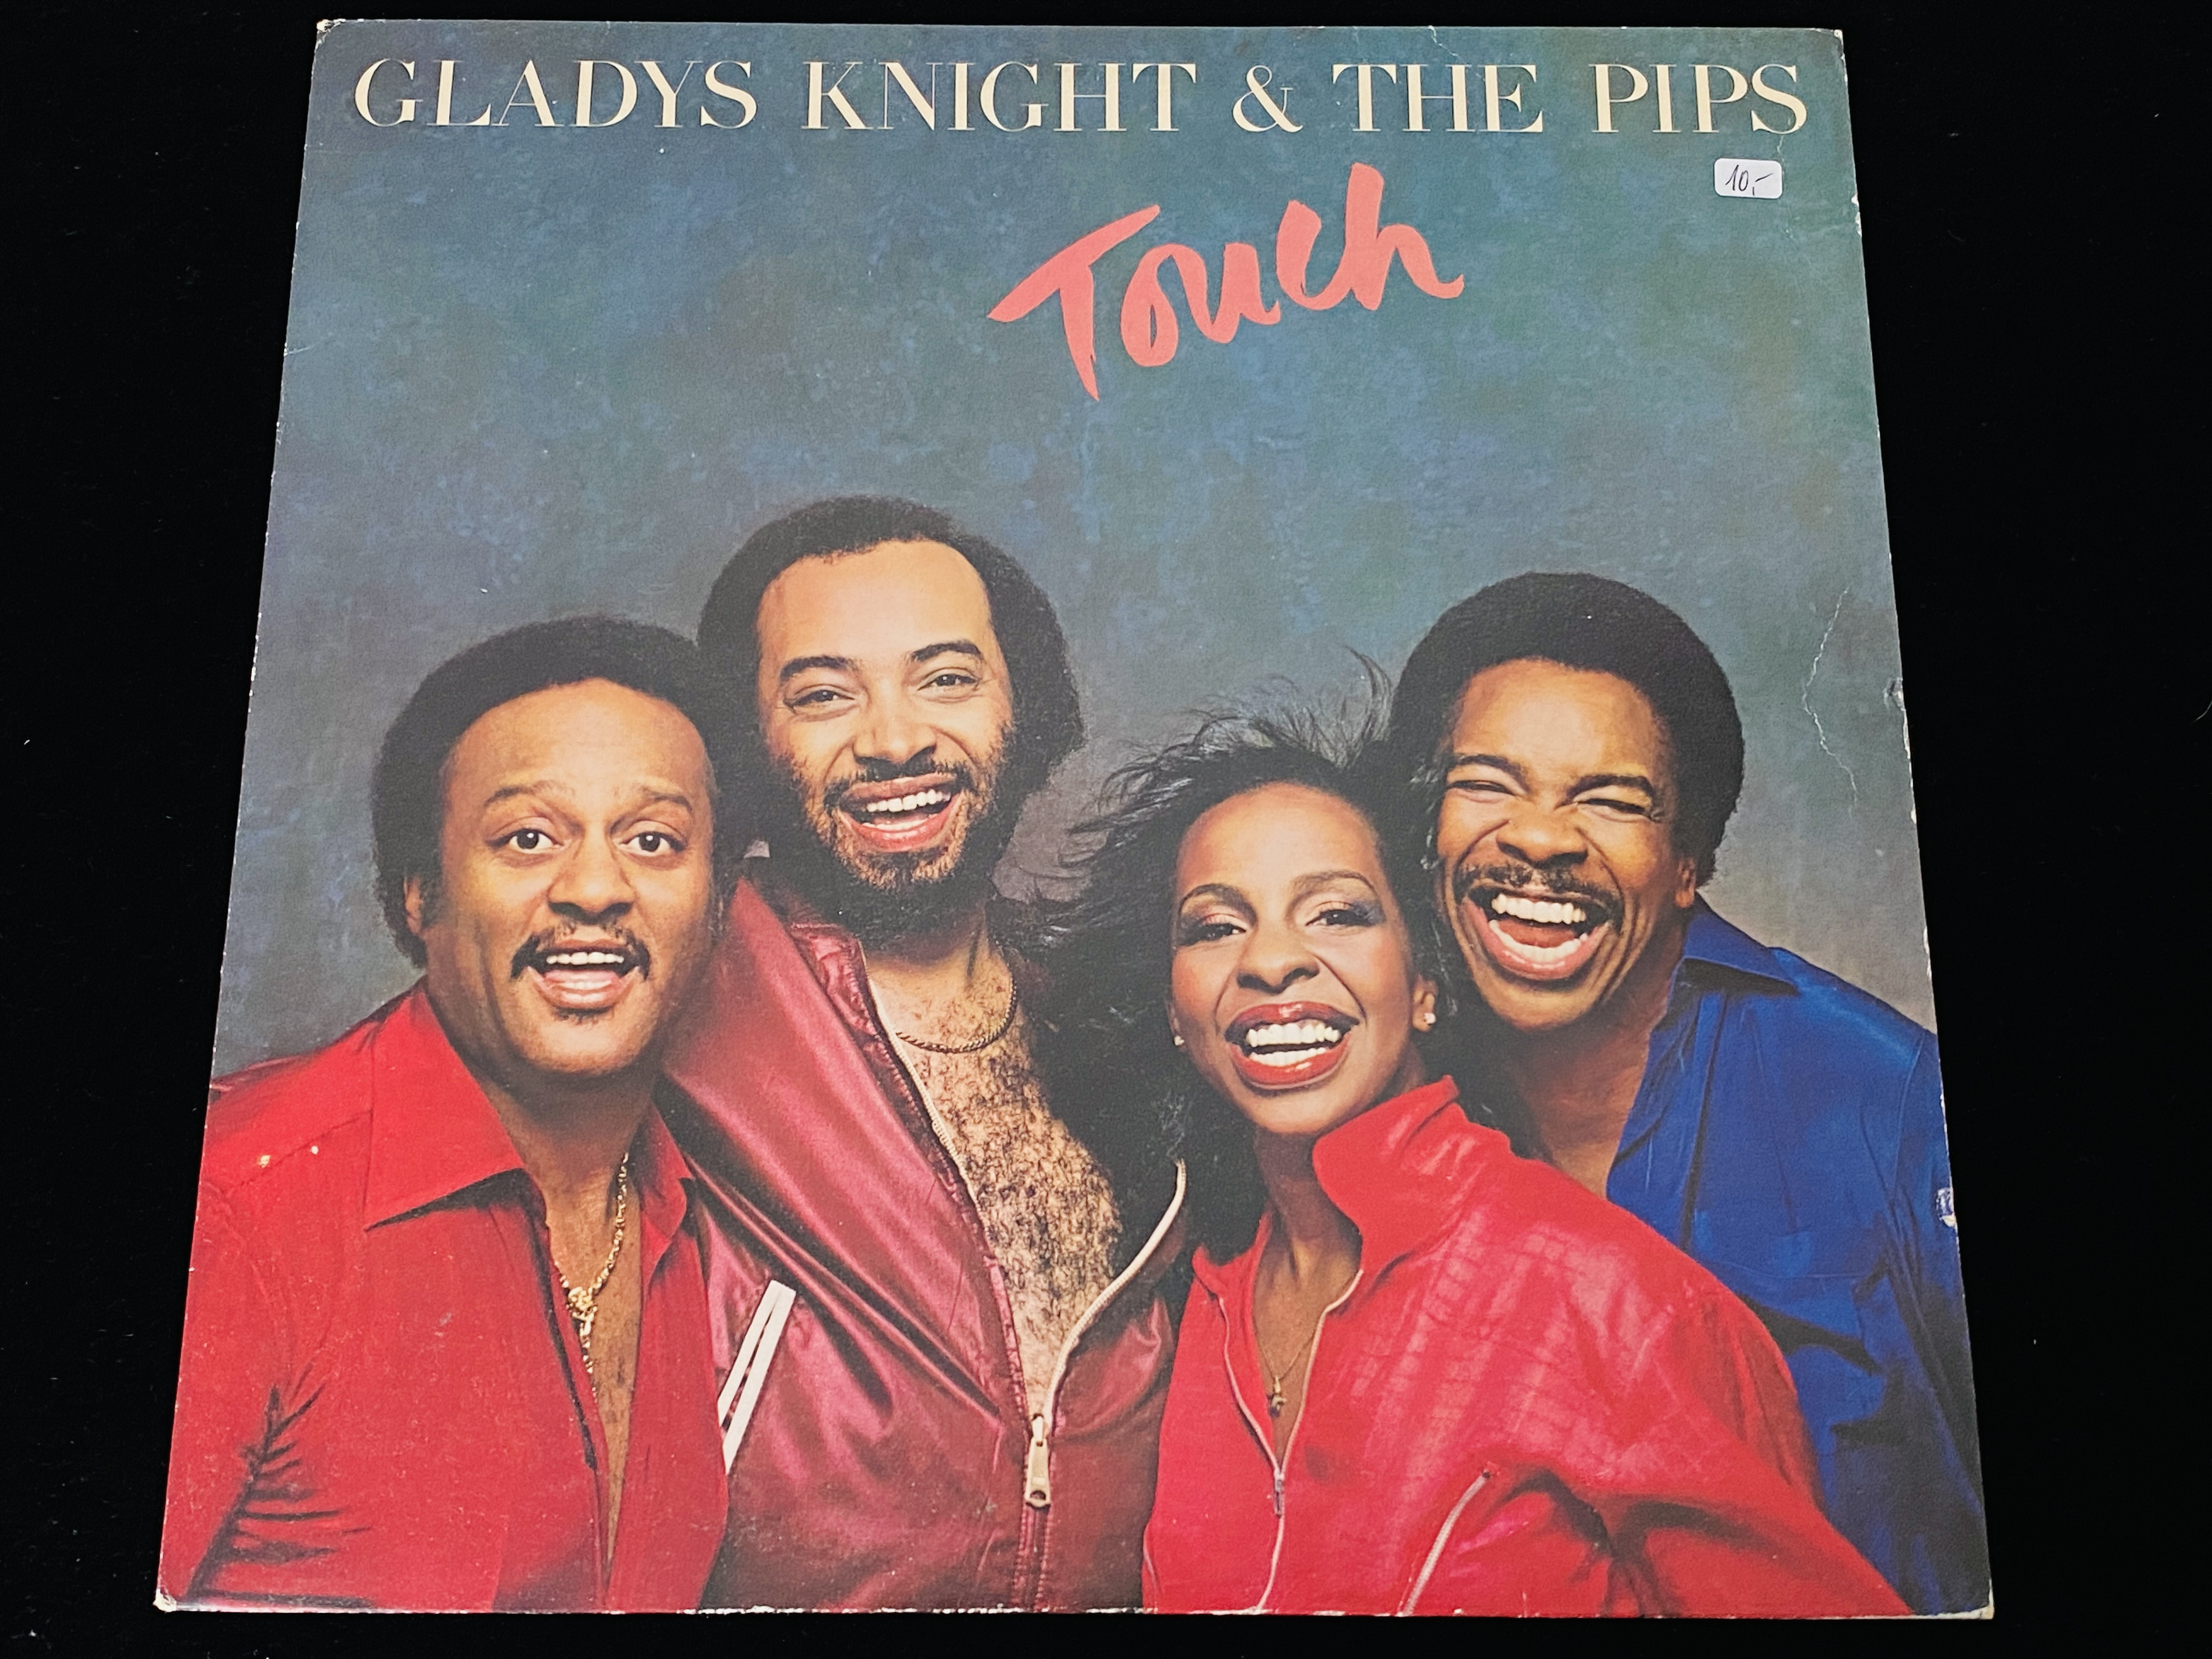 Gladys Knight & The Pips - Touch (NL, 1981)